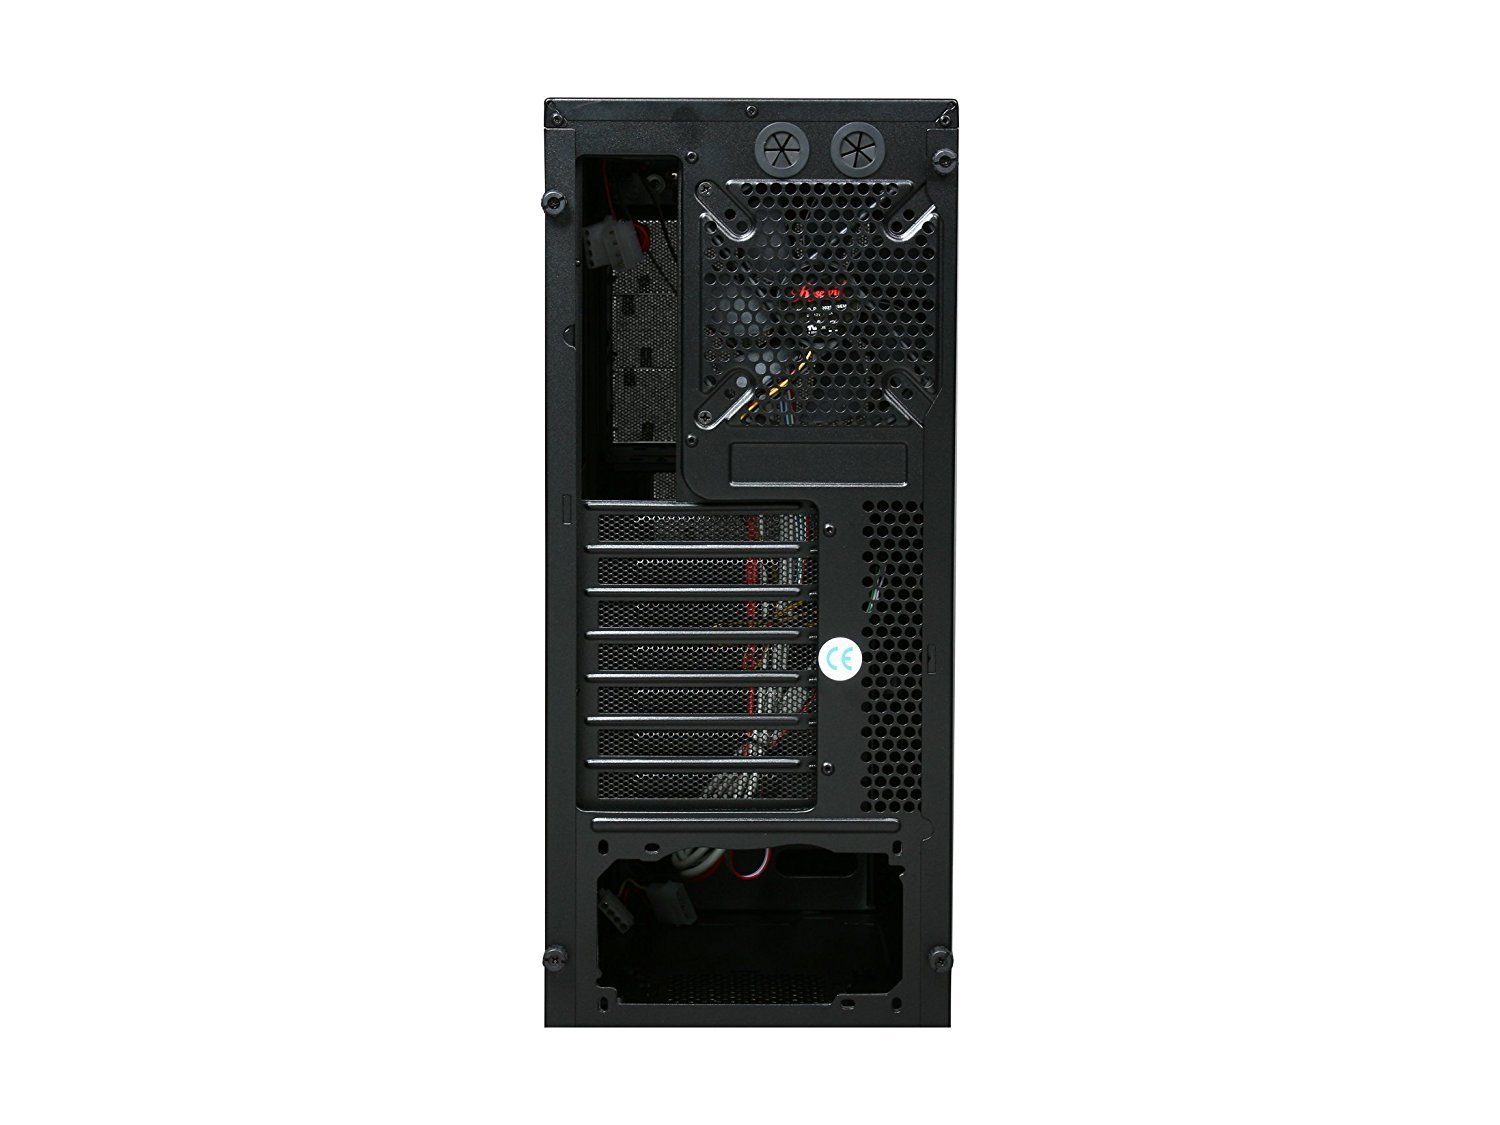 ROSEWILL ATX Mid Tower Gaming Computer Case, Gaming Case with Blue LED for Desktop / PC and 3 Case Fans Pre-Installed, Front I/O Access Ports  (CHALLENGER) by Rosewill (Image #8)